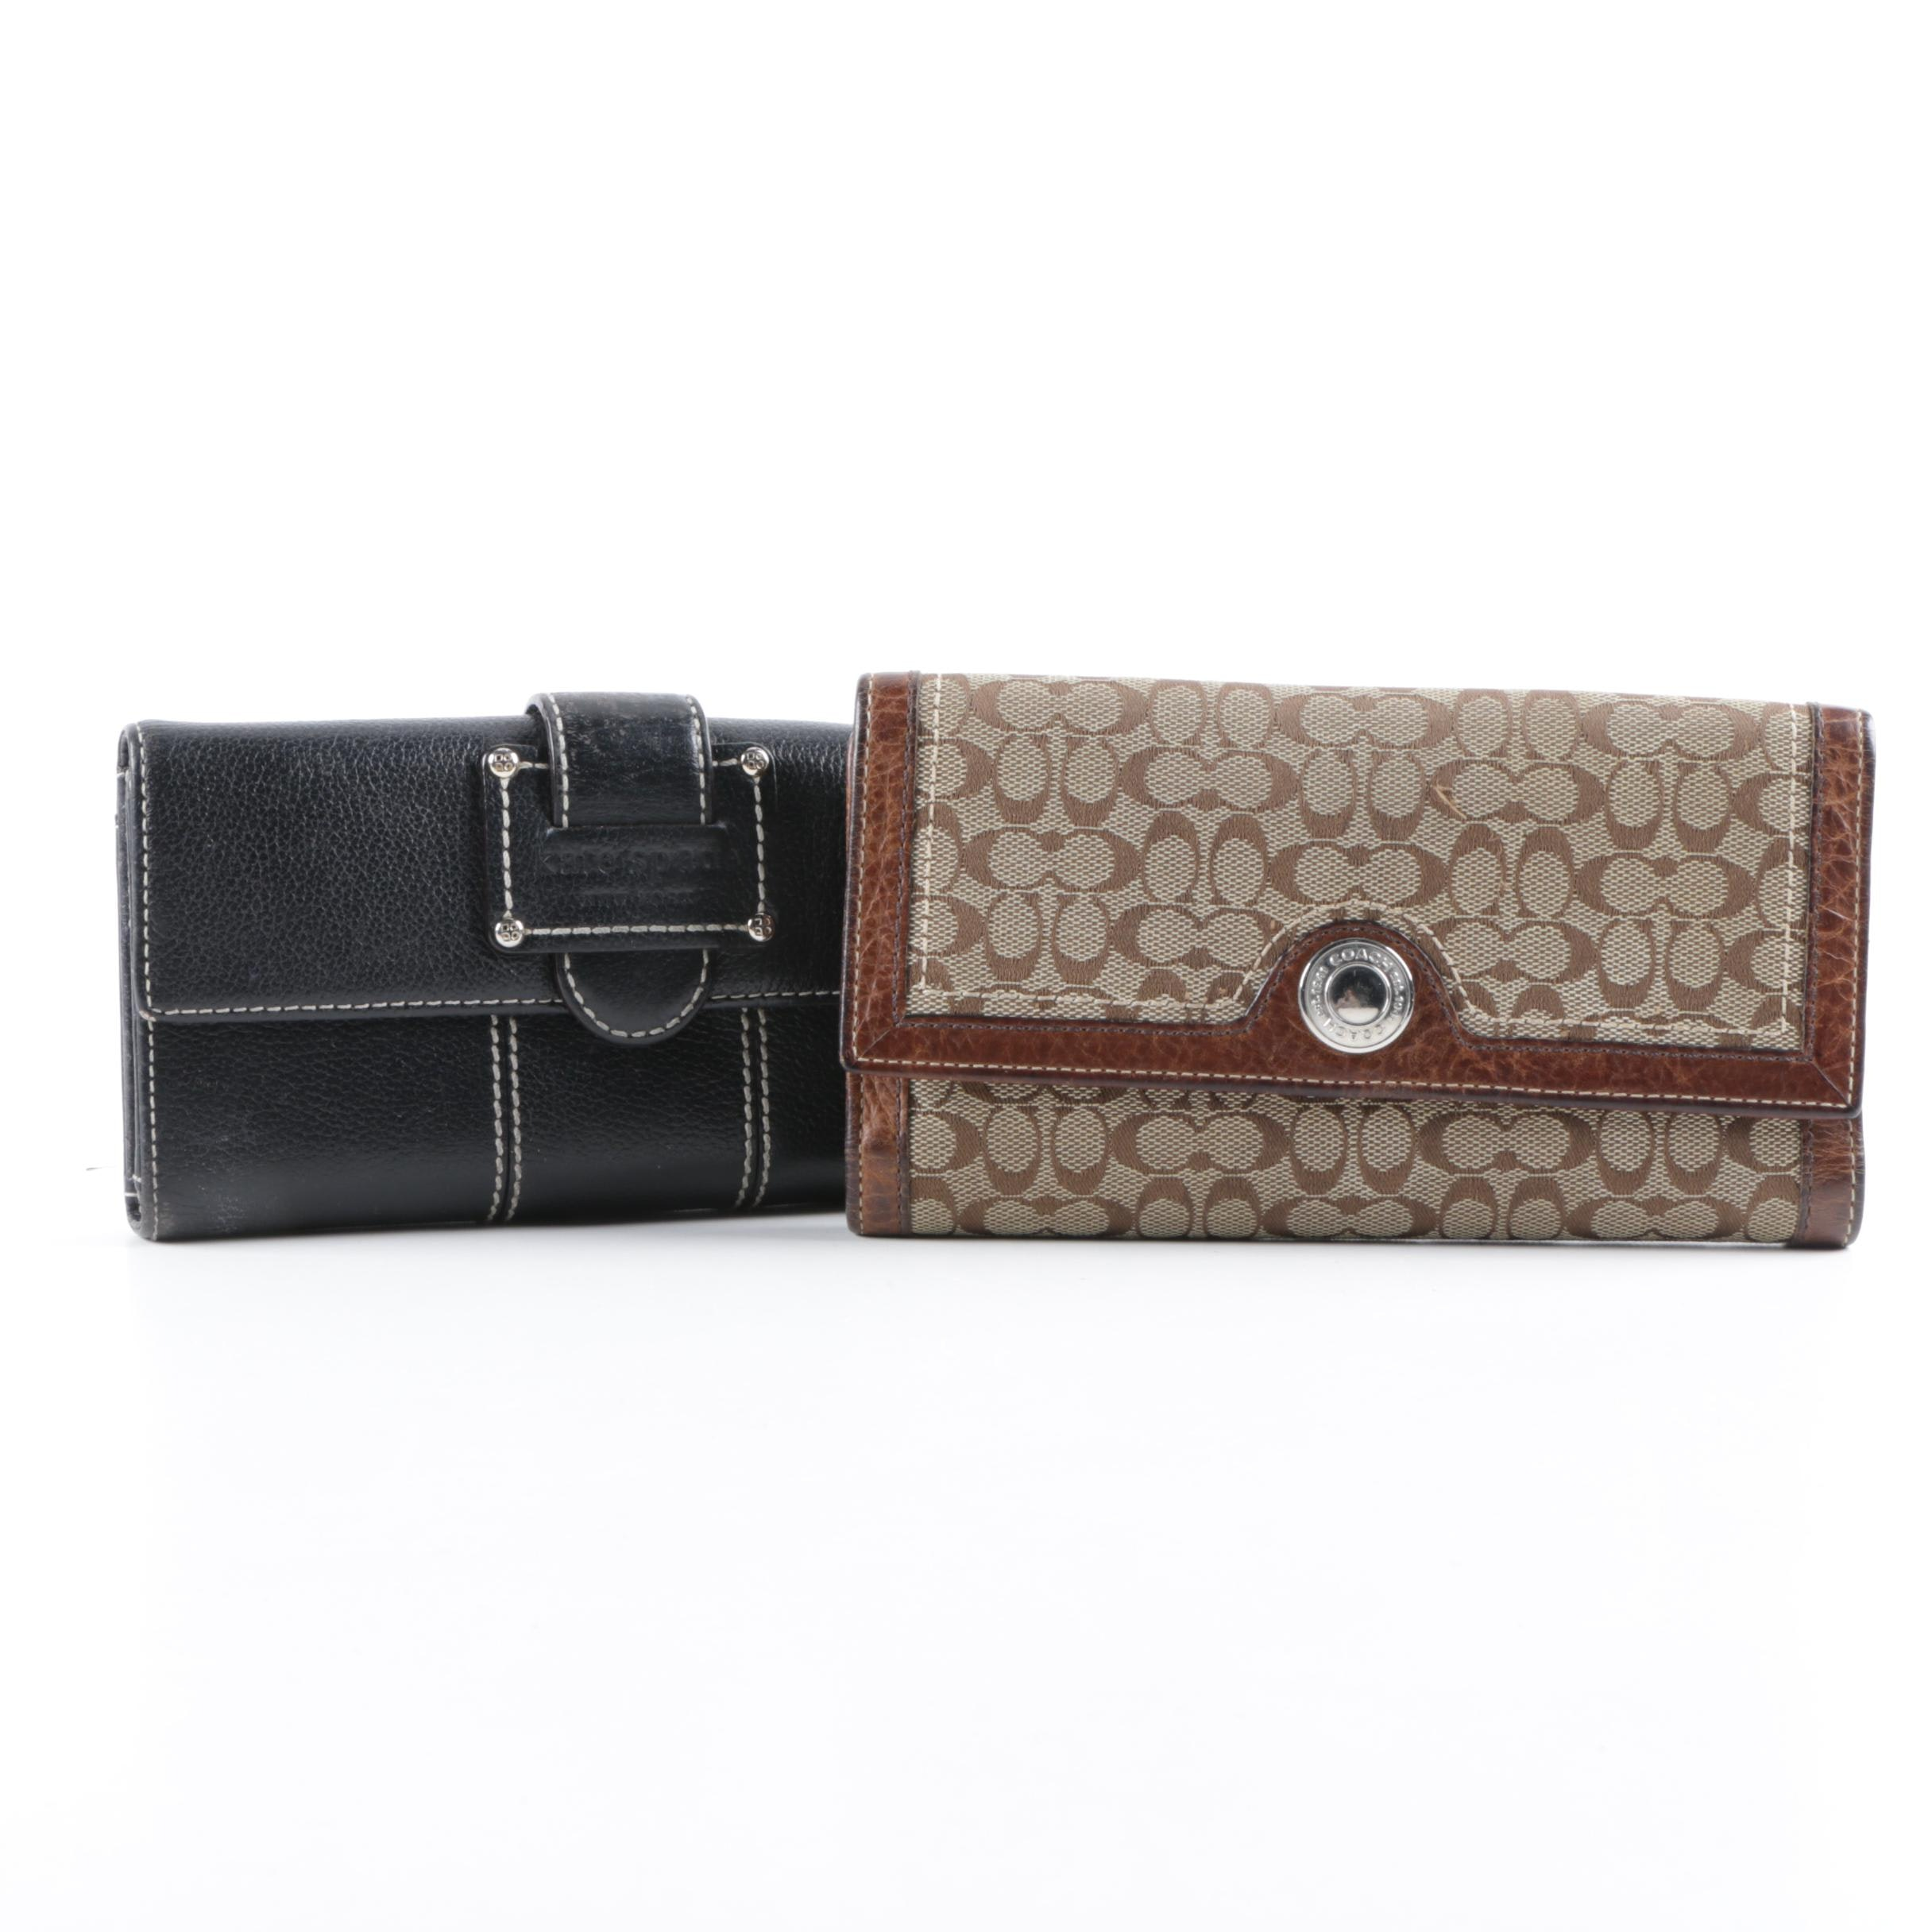 Coach and Kate Spade New York Wallets